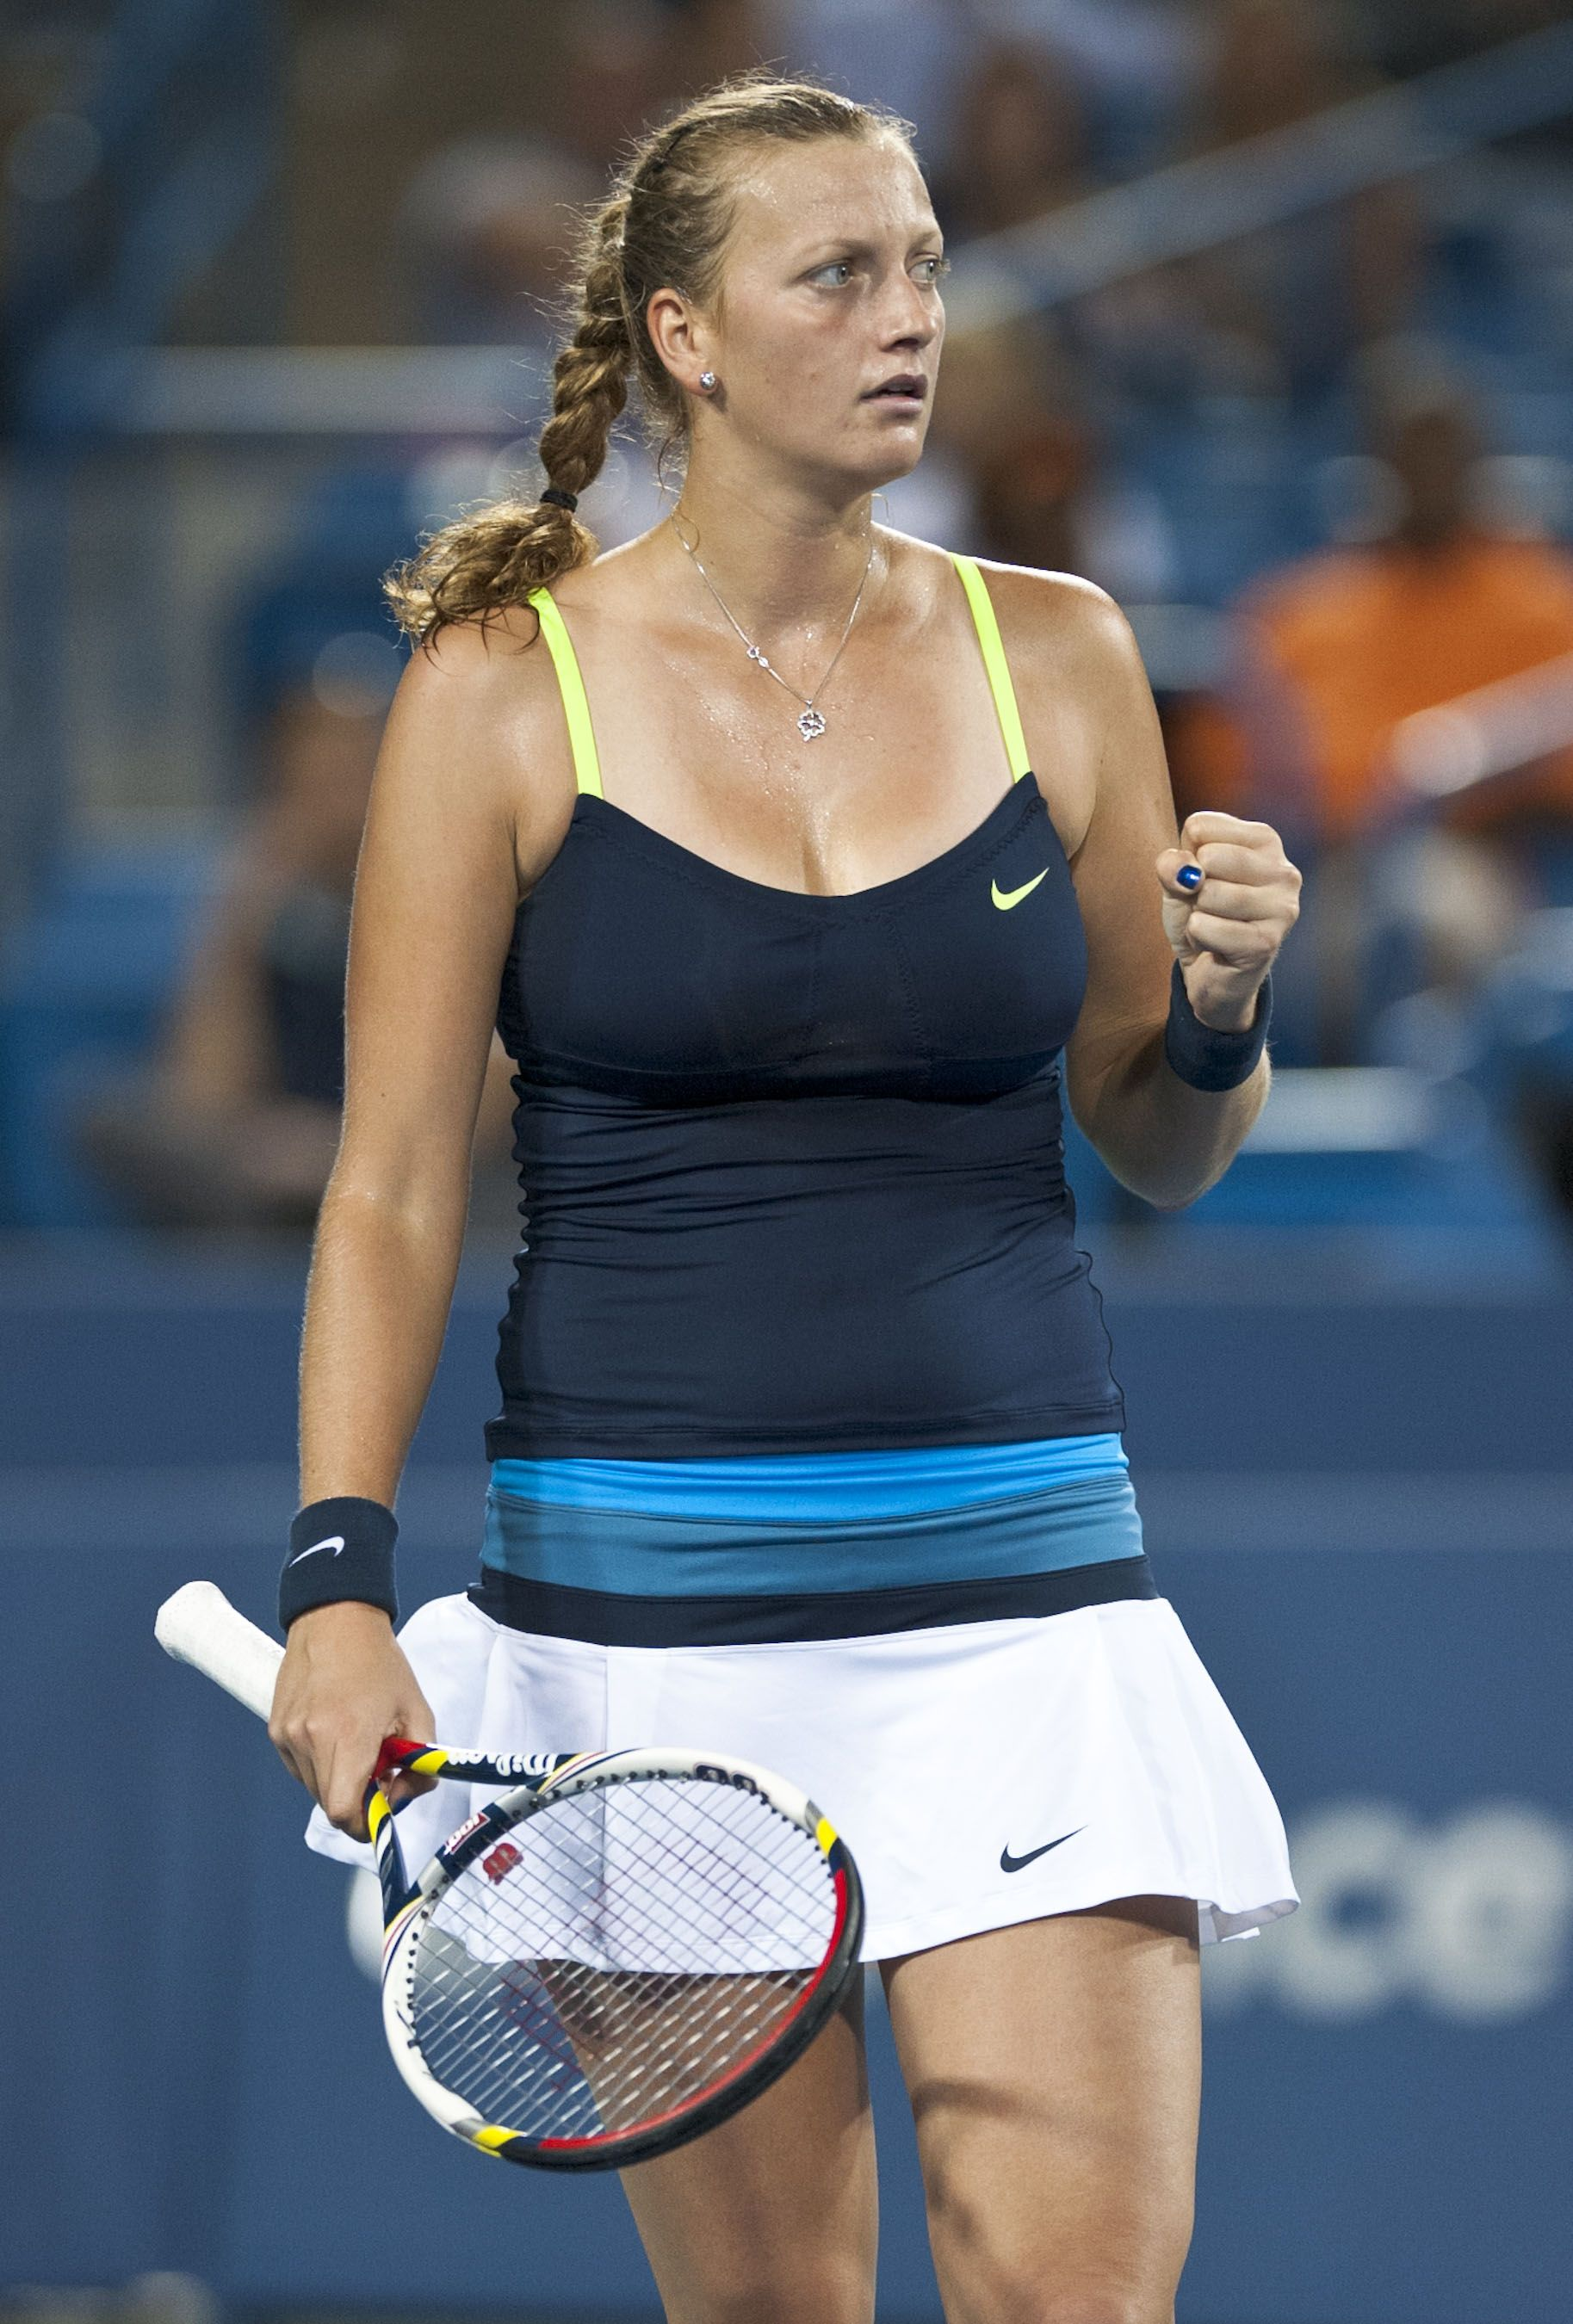 Cleavage Victoria Azarenka nude photos 2019